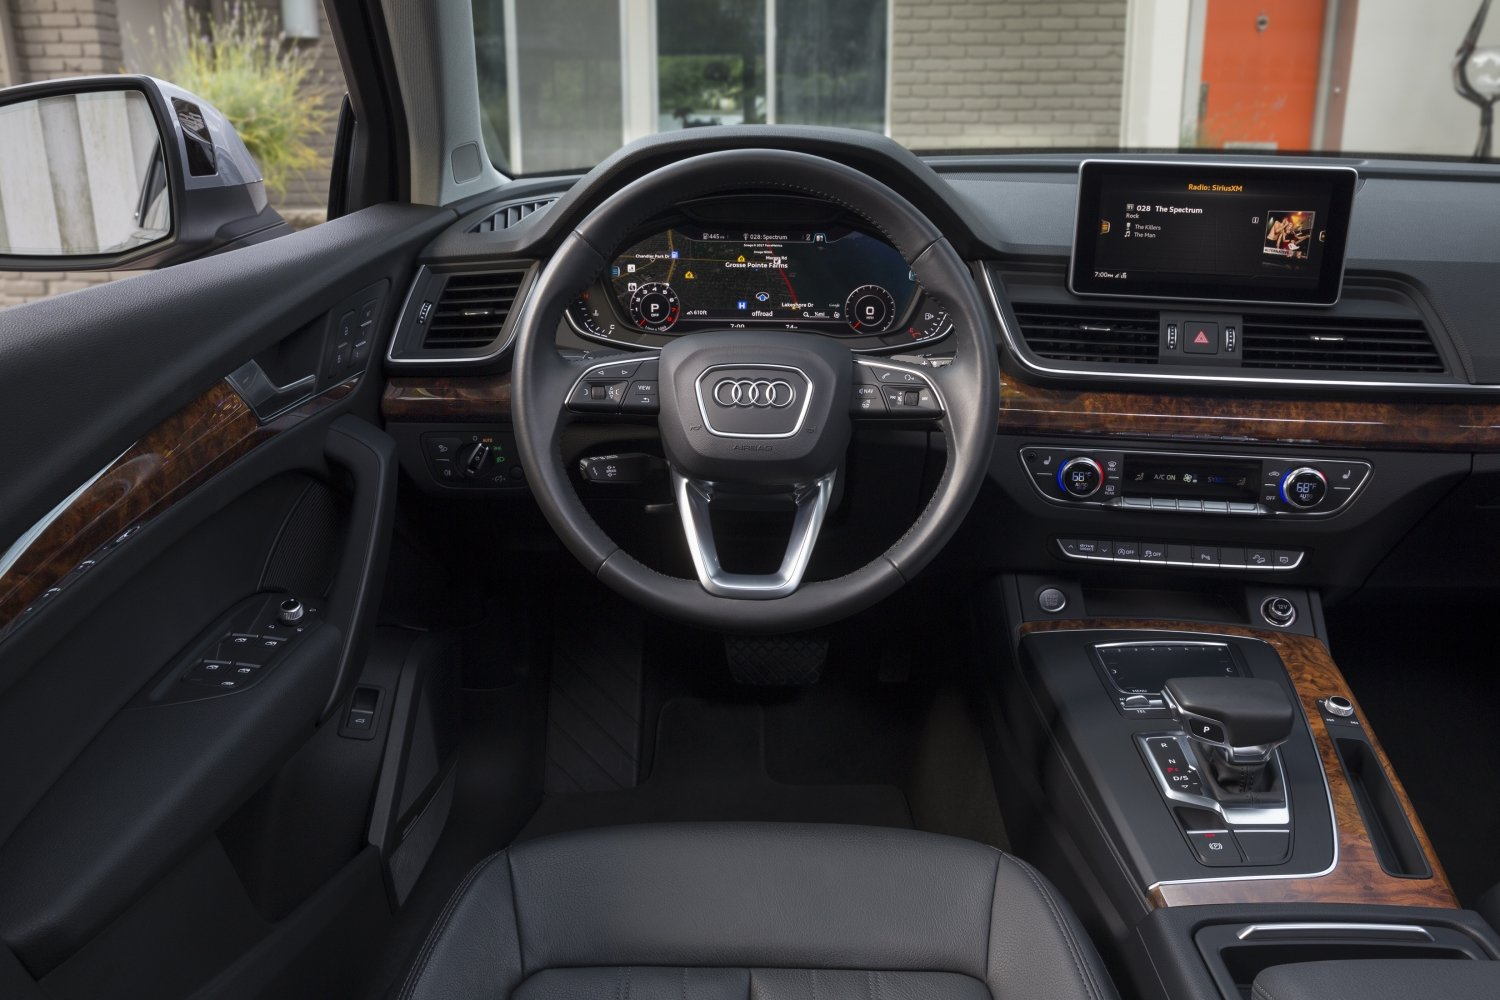 Latest 2018 Audi Q5 Reviews Roundup The Unofficial Audi Blog Free Download